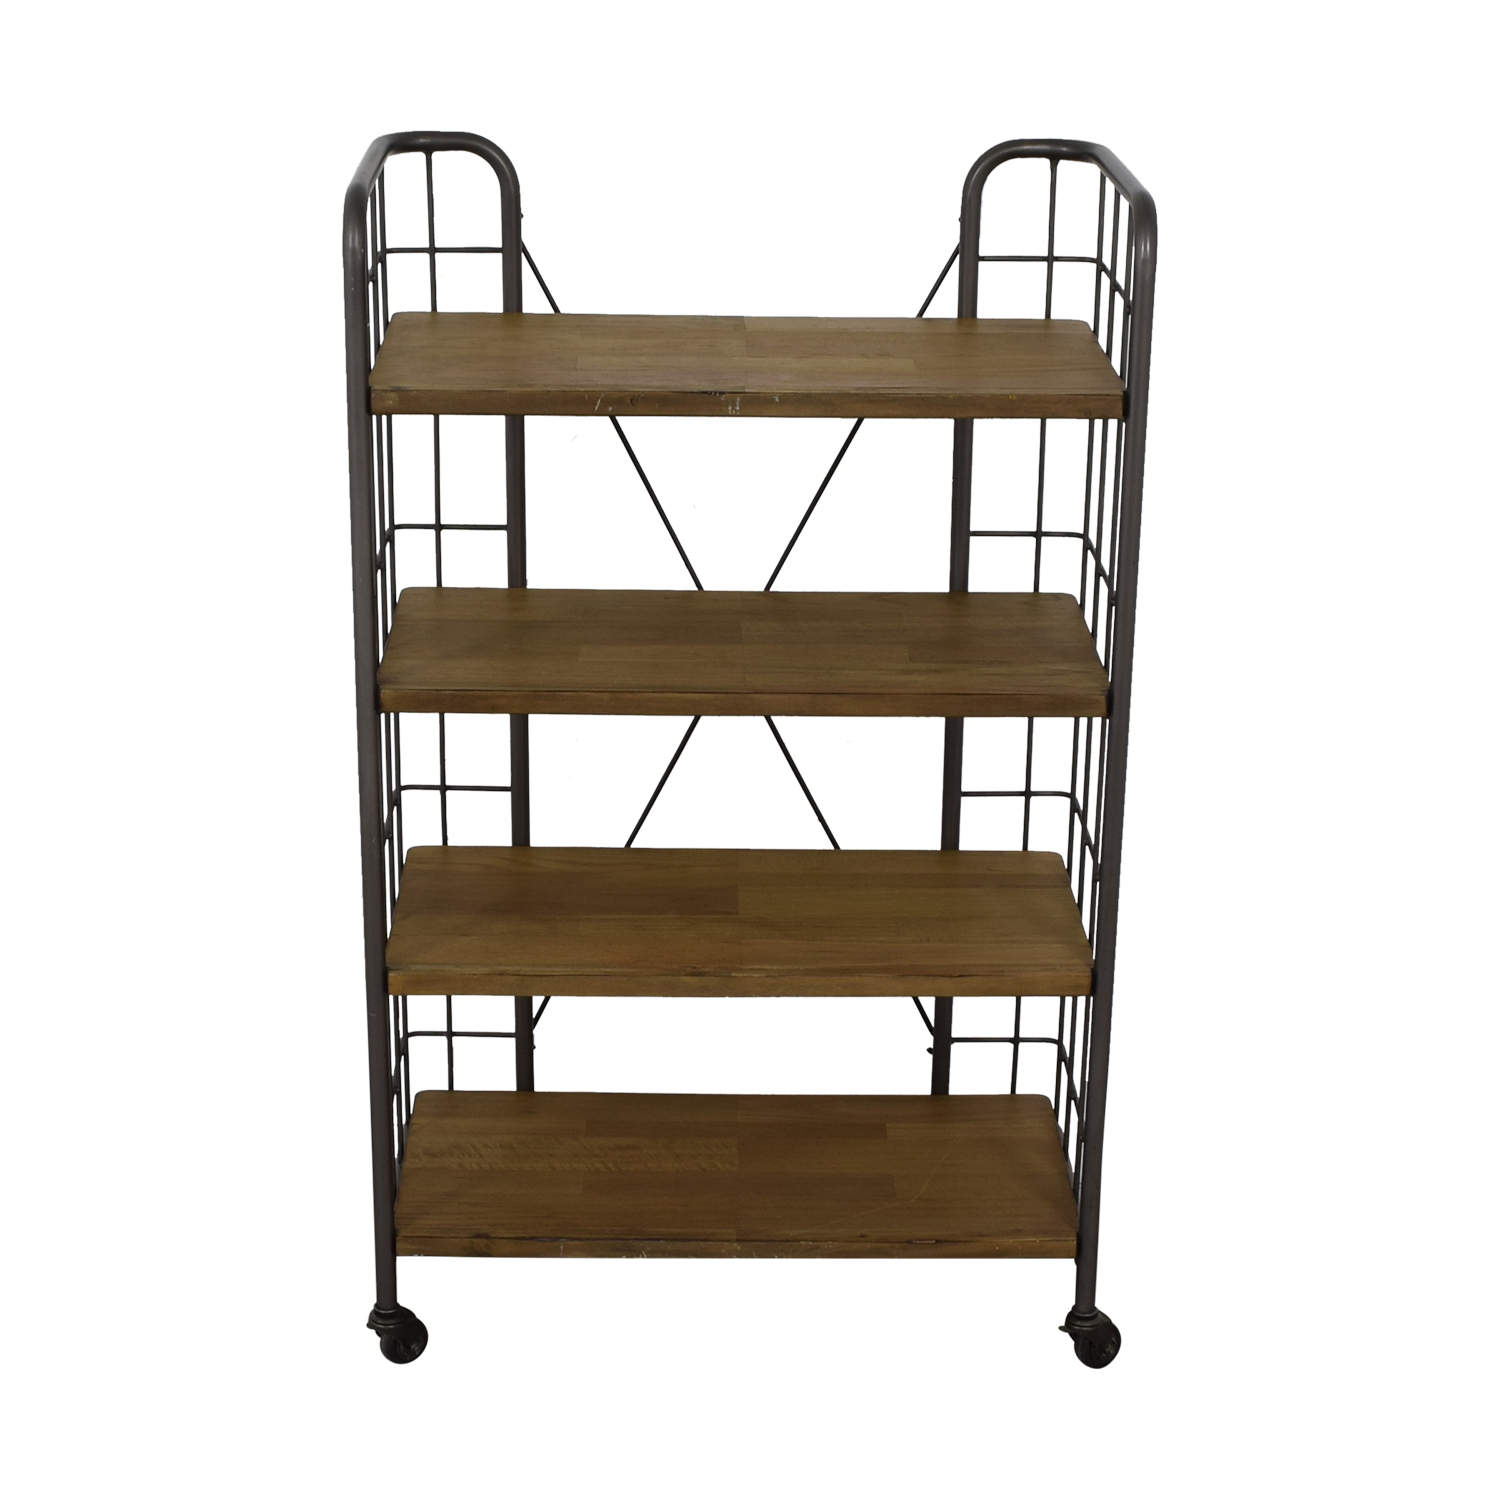 World Market World Market Industrial Four-Tier Shelves with Casters used